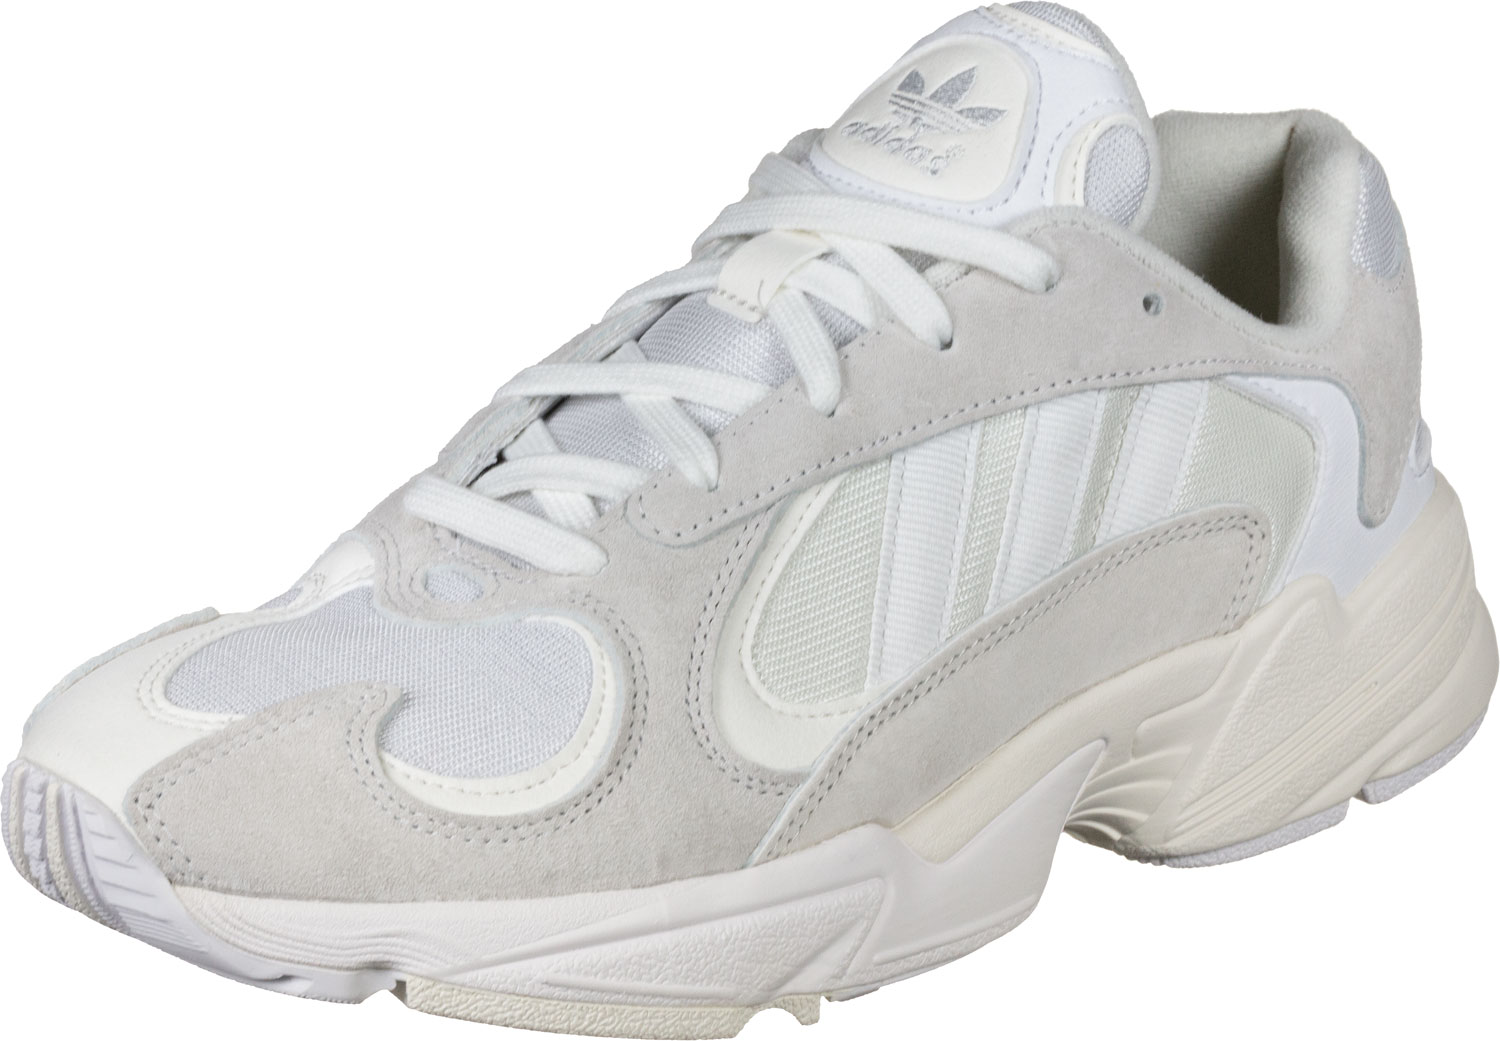 adidas Yung-1 - Sneakers Low at Stylefile